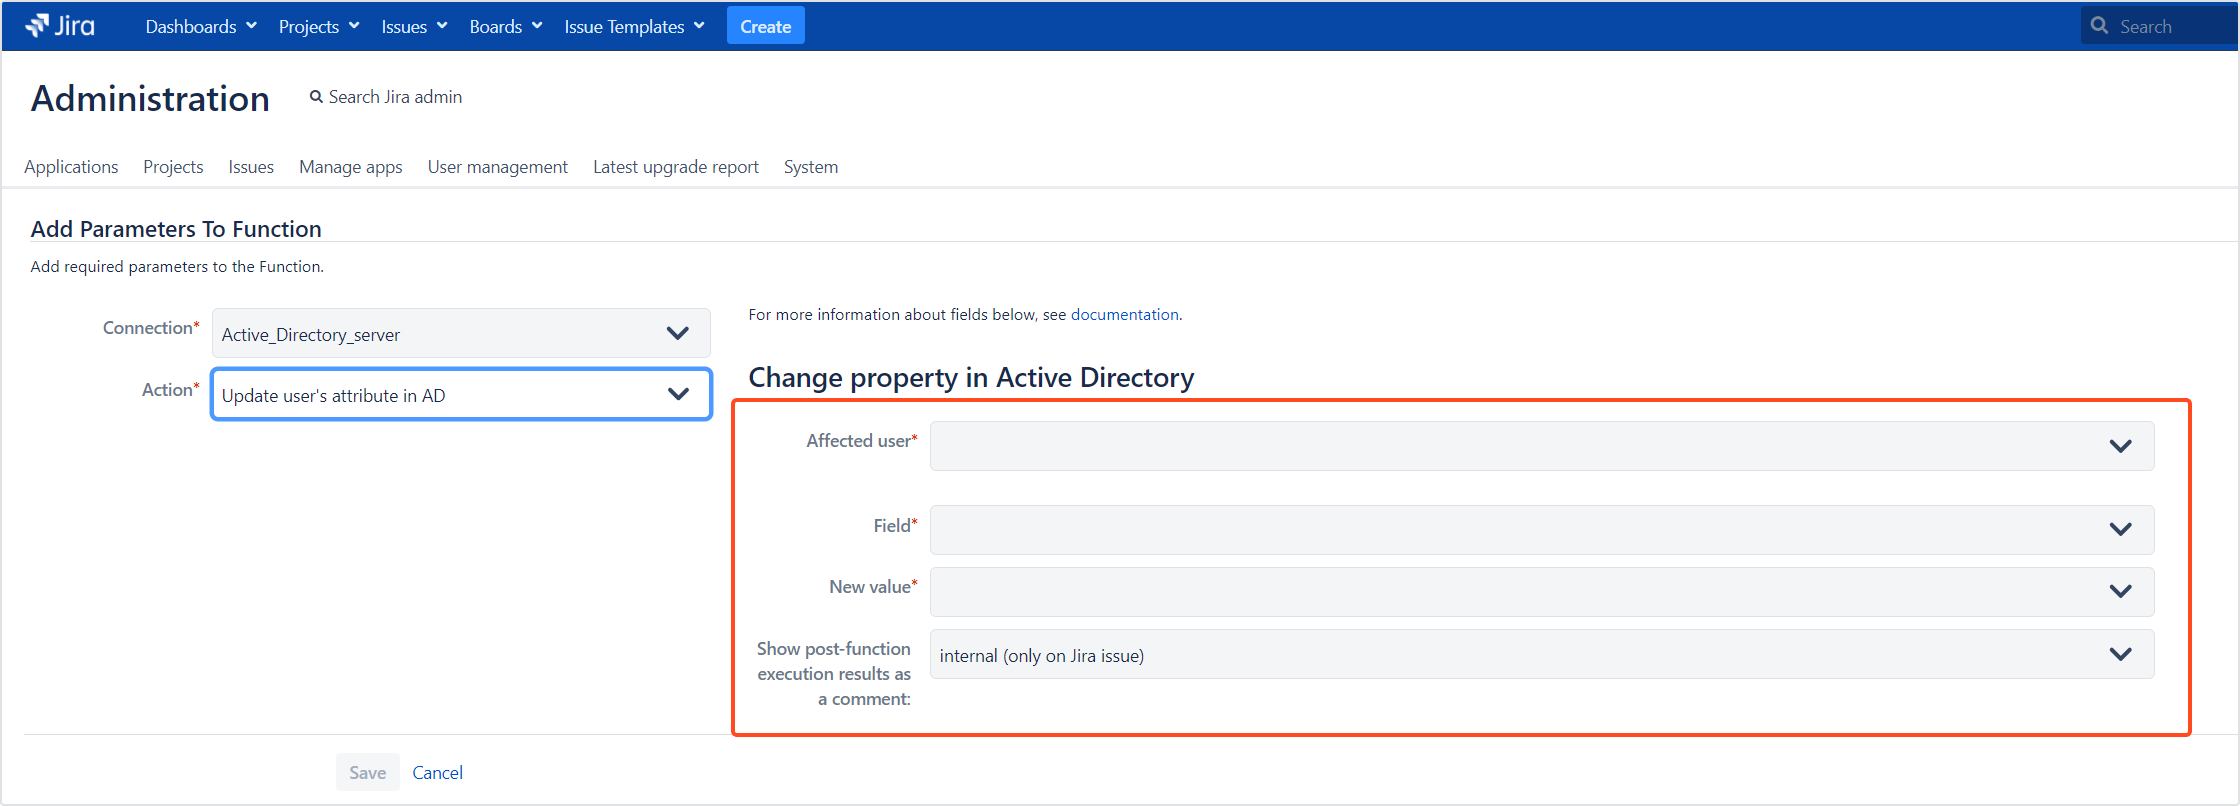 Active Directory Attributes Sync for Jira - Update Data: Update user's attribute in AD